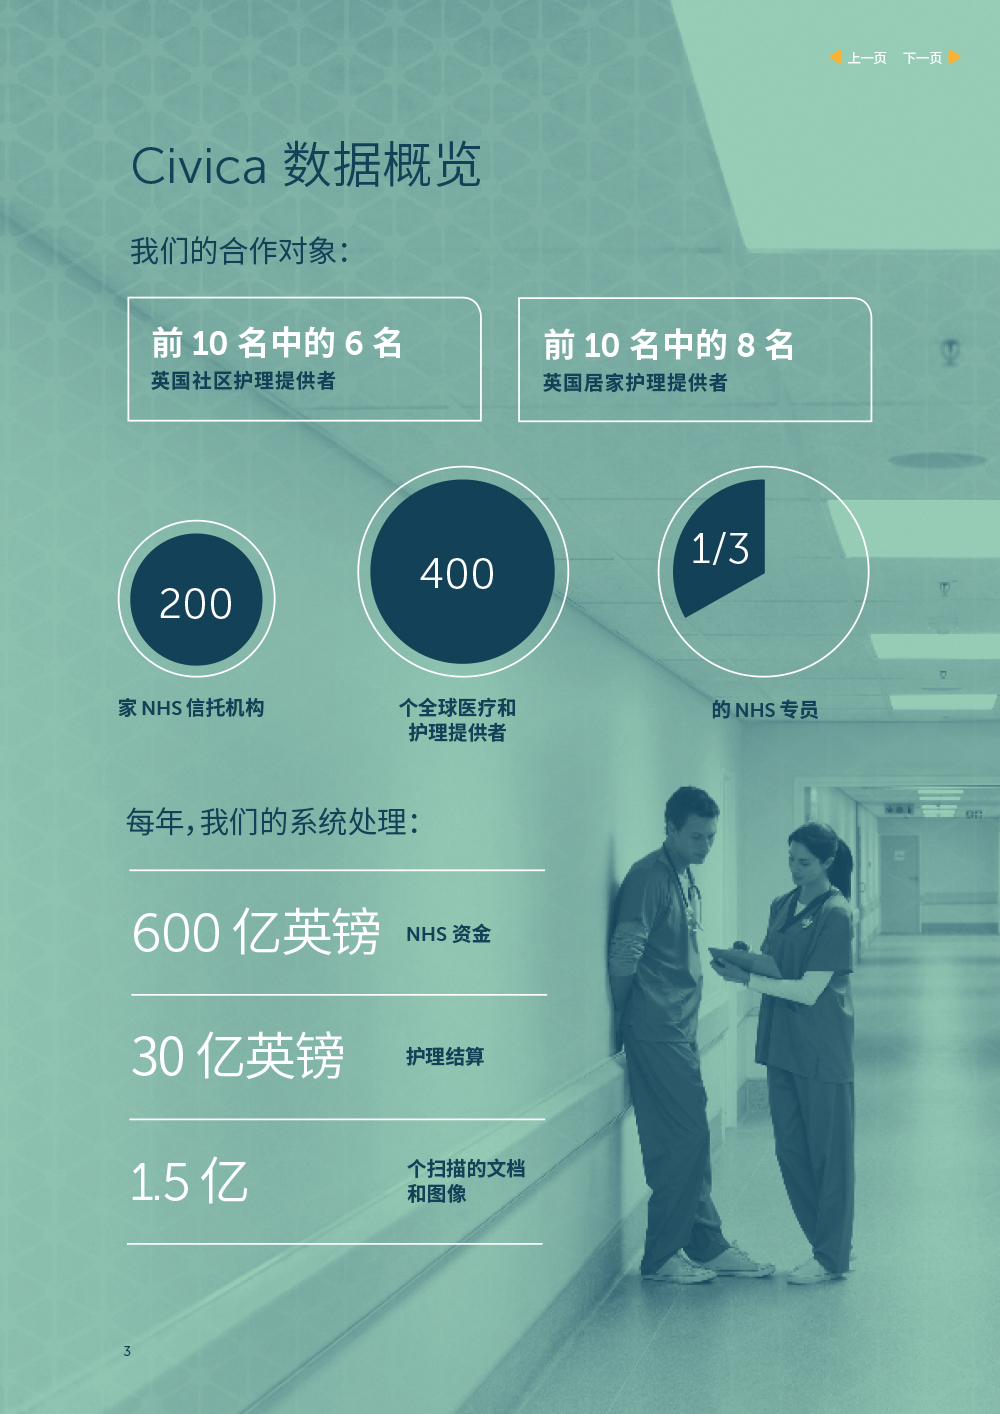 English to Simplified Chinese